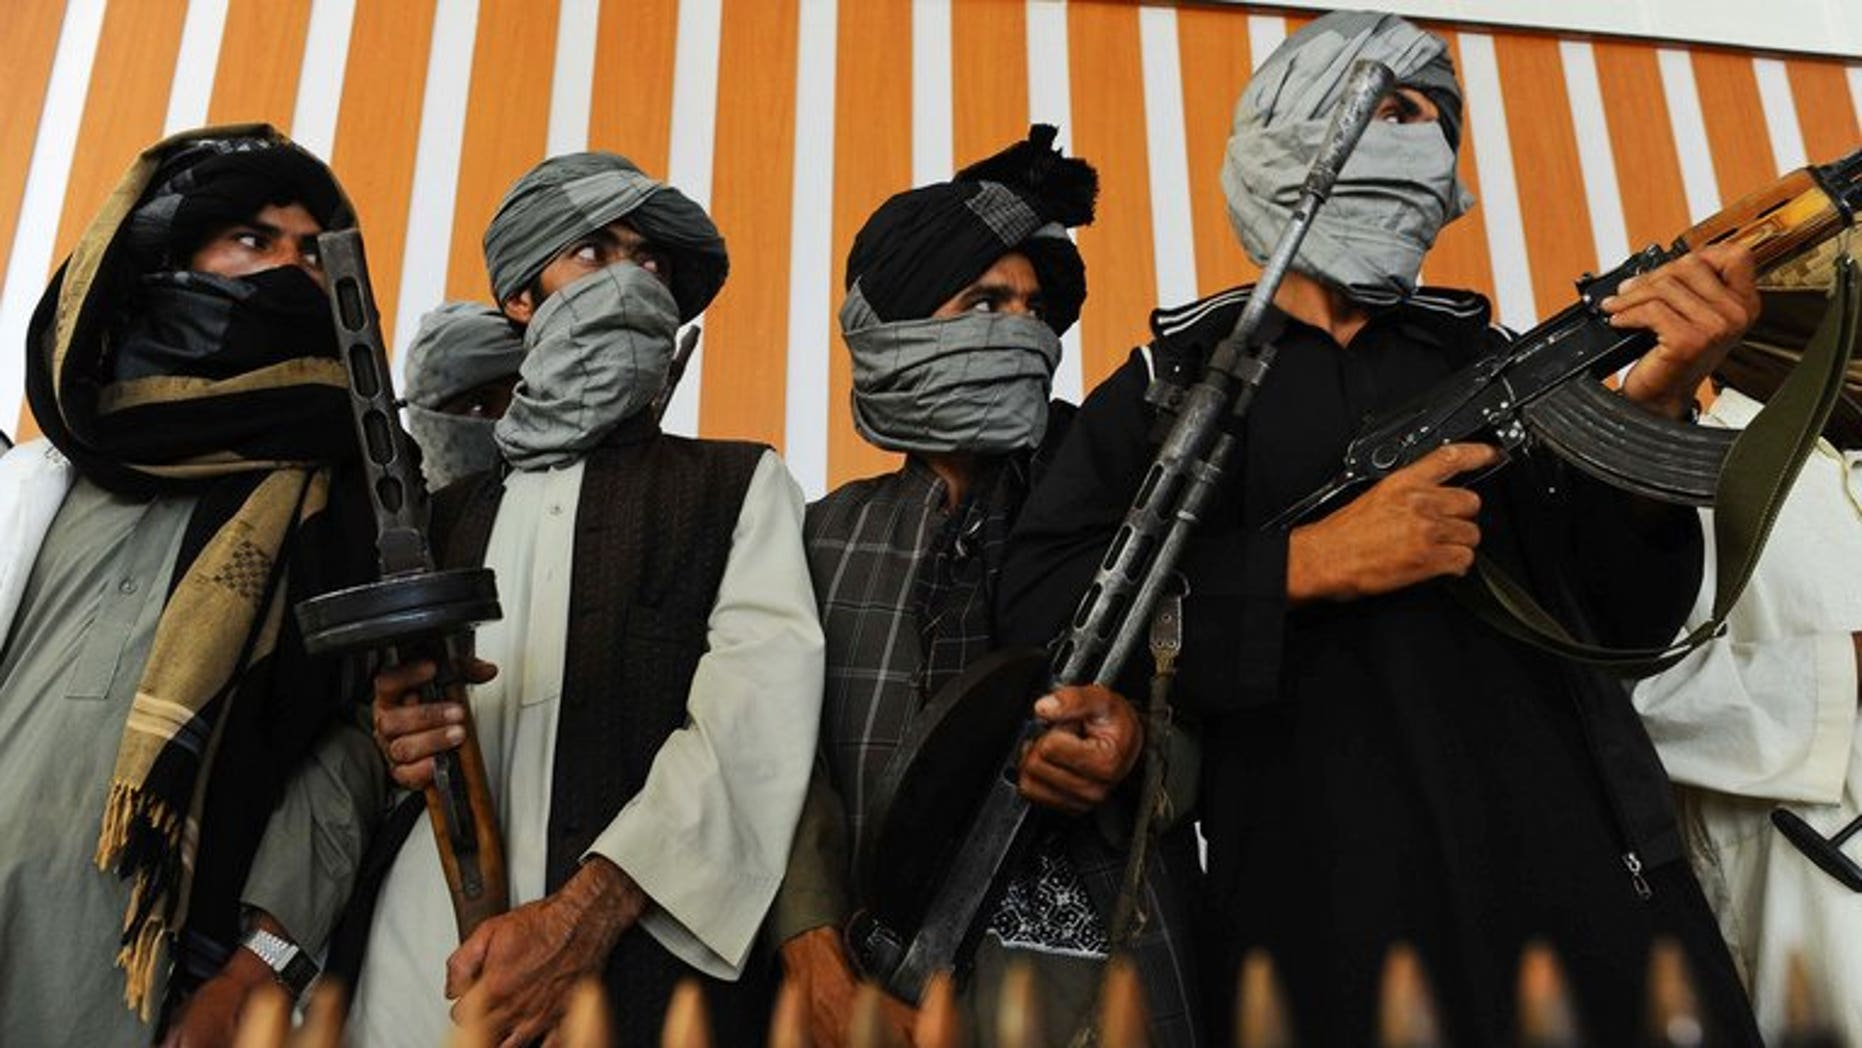 Taliban fighters stand with their weapons during a ceremony in Herat, western Afghanistan, on August 7, 2013. Mortar shells fired from Afghanistan have hit a border village in northwest Pakistan, killing two civilians, security officials told AFP.